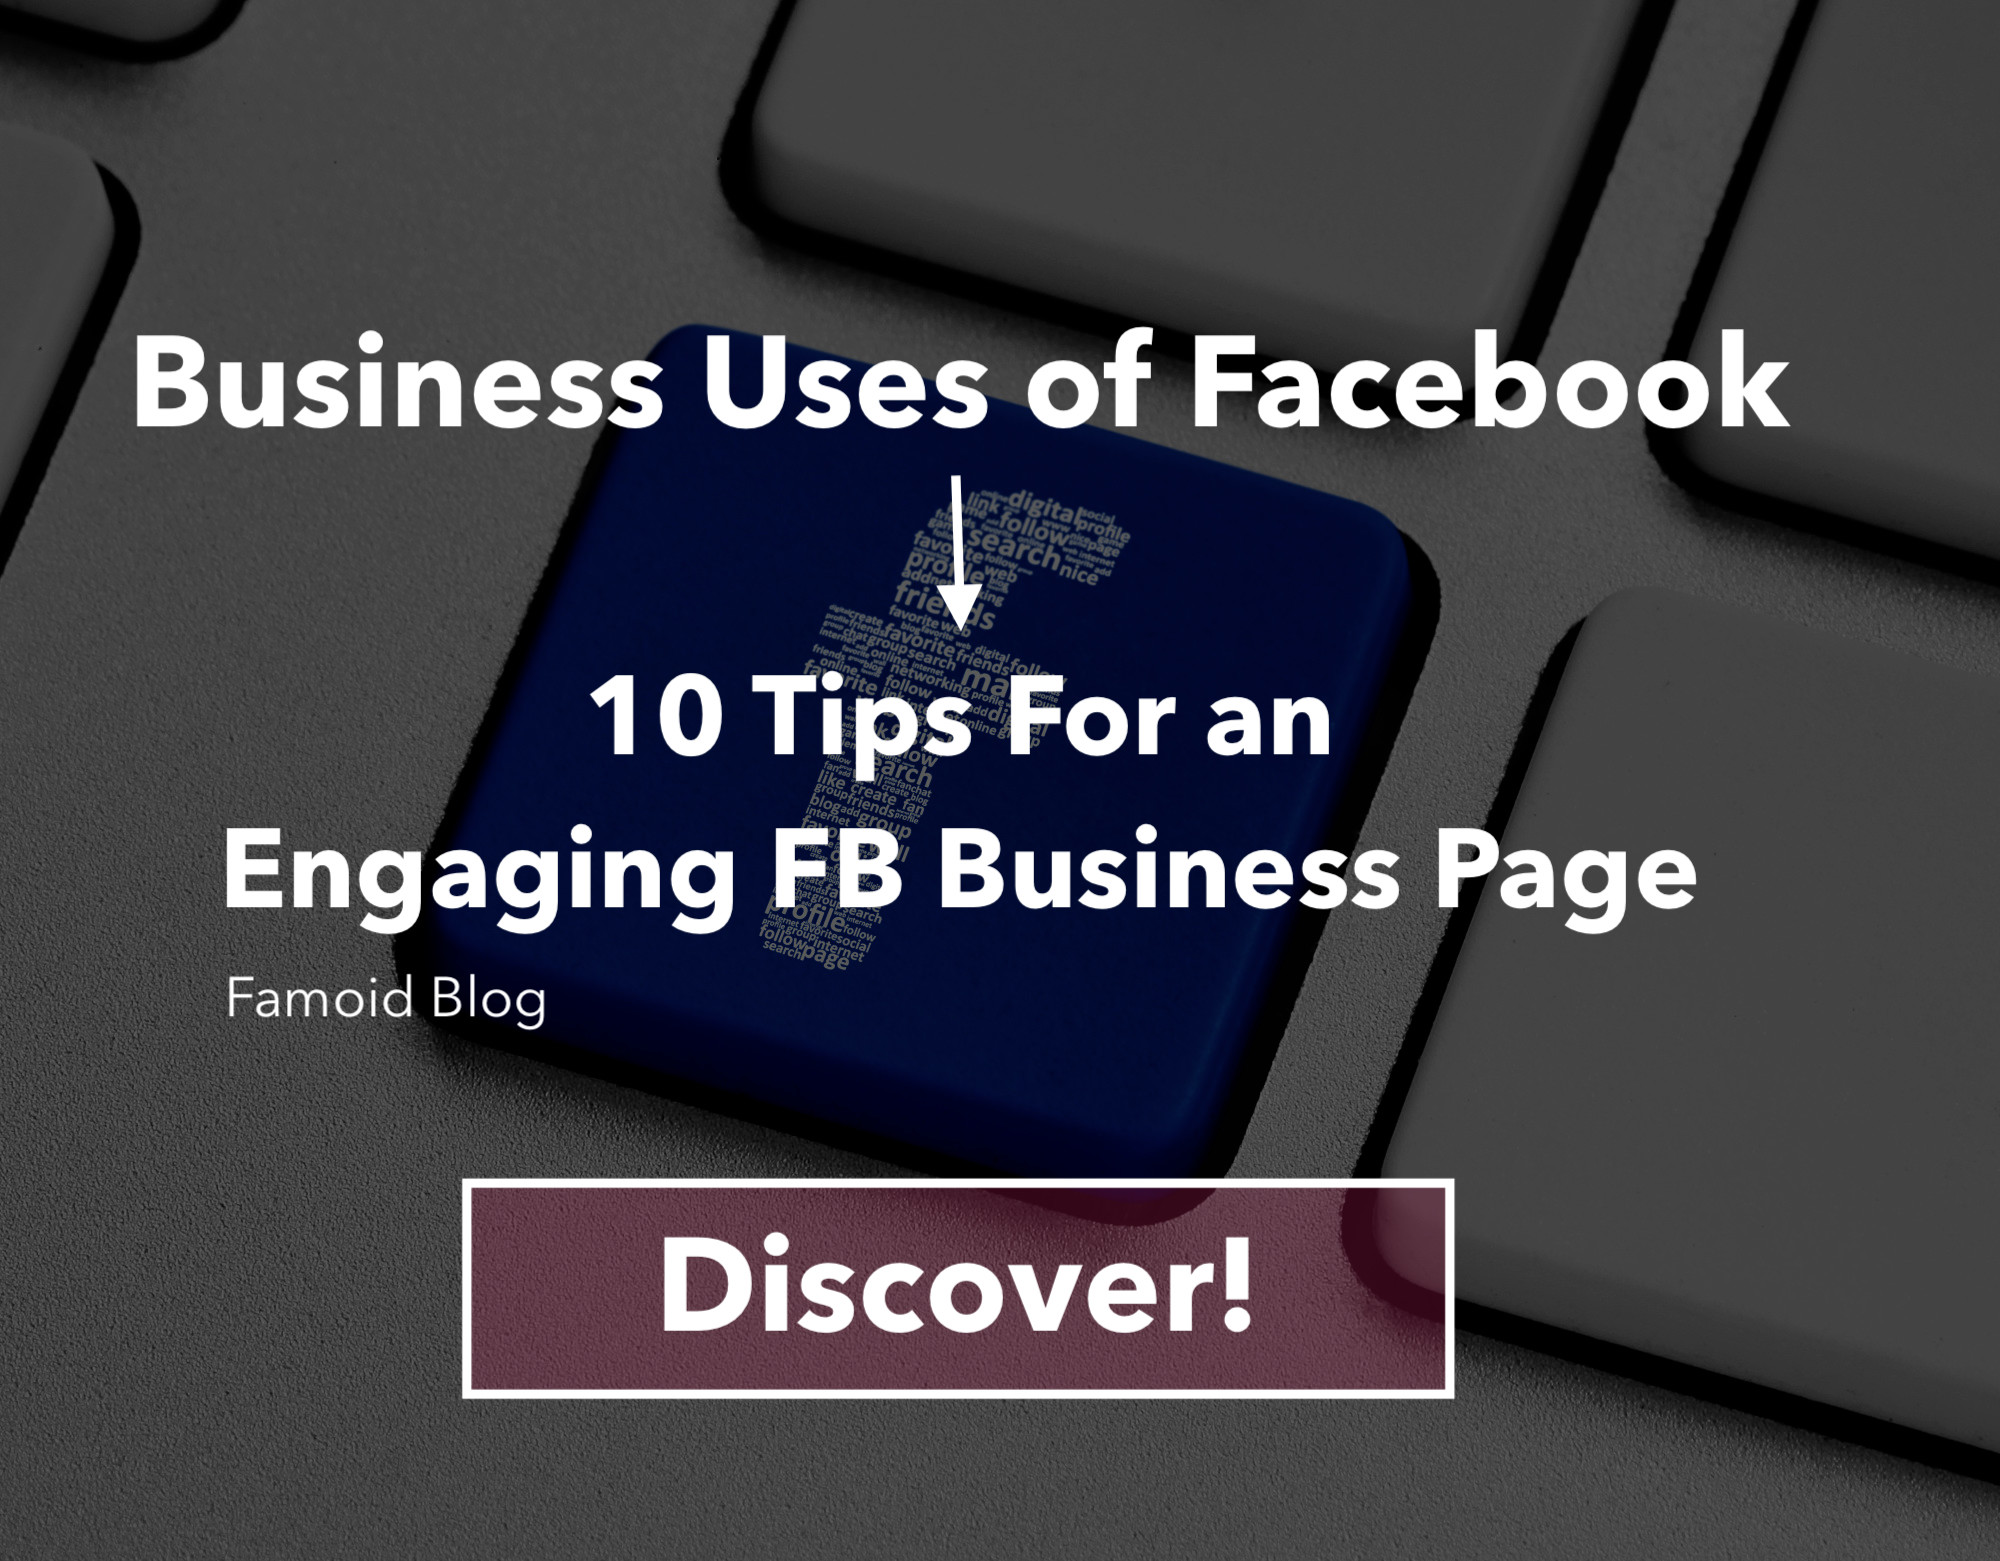 Business Uses of Facebook: 10 Tips For an Engaging FB